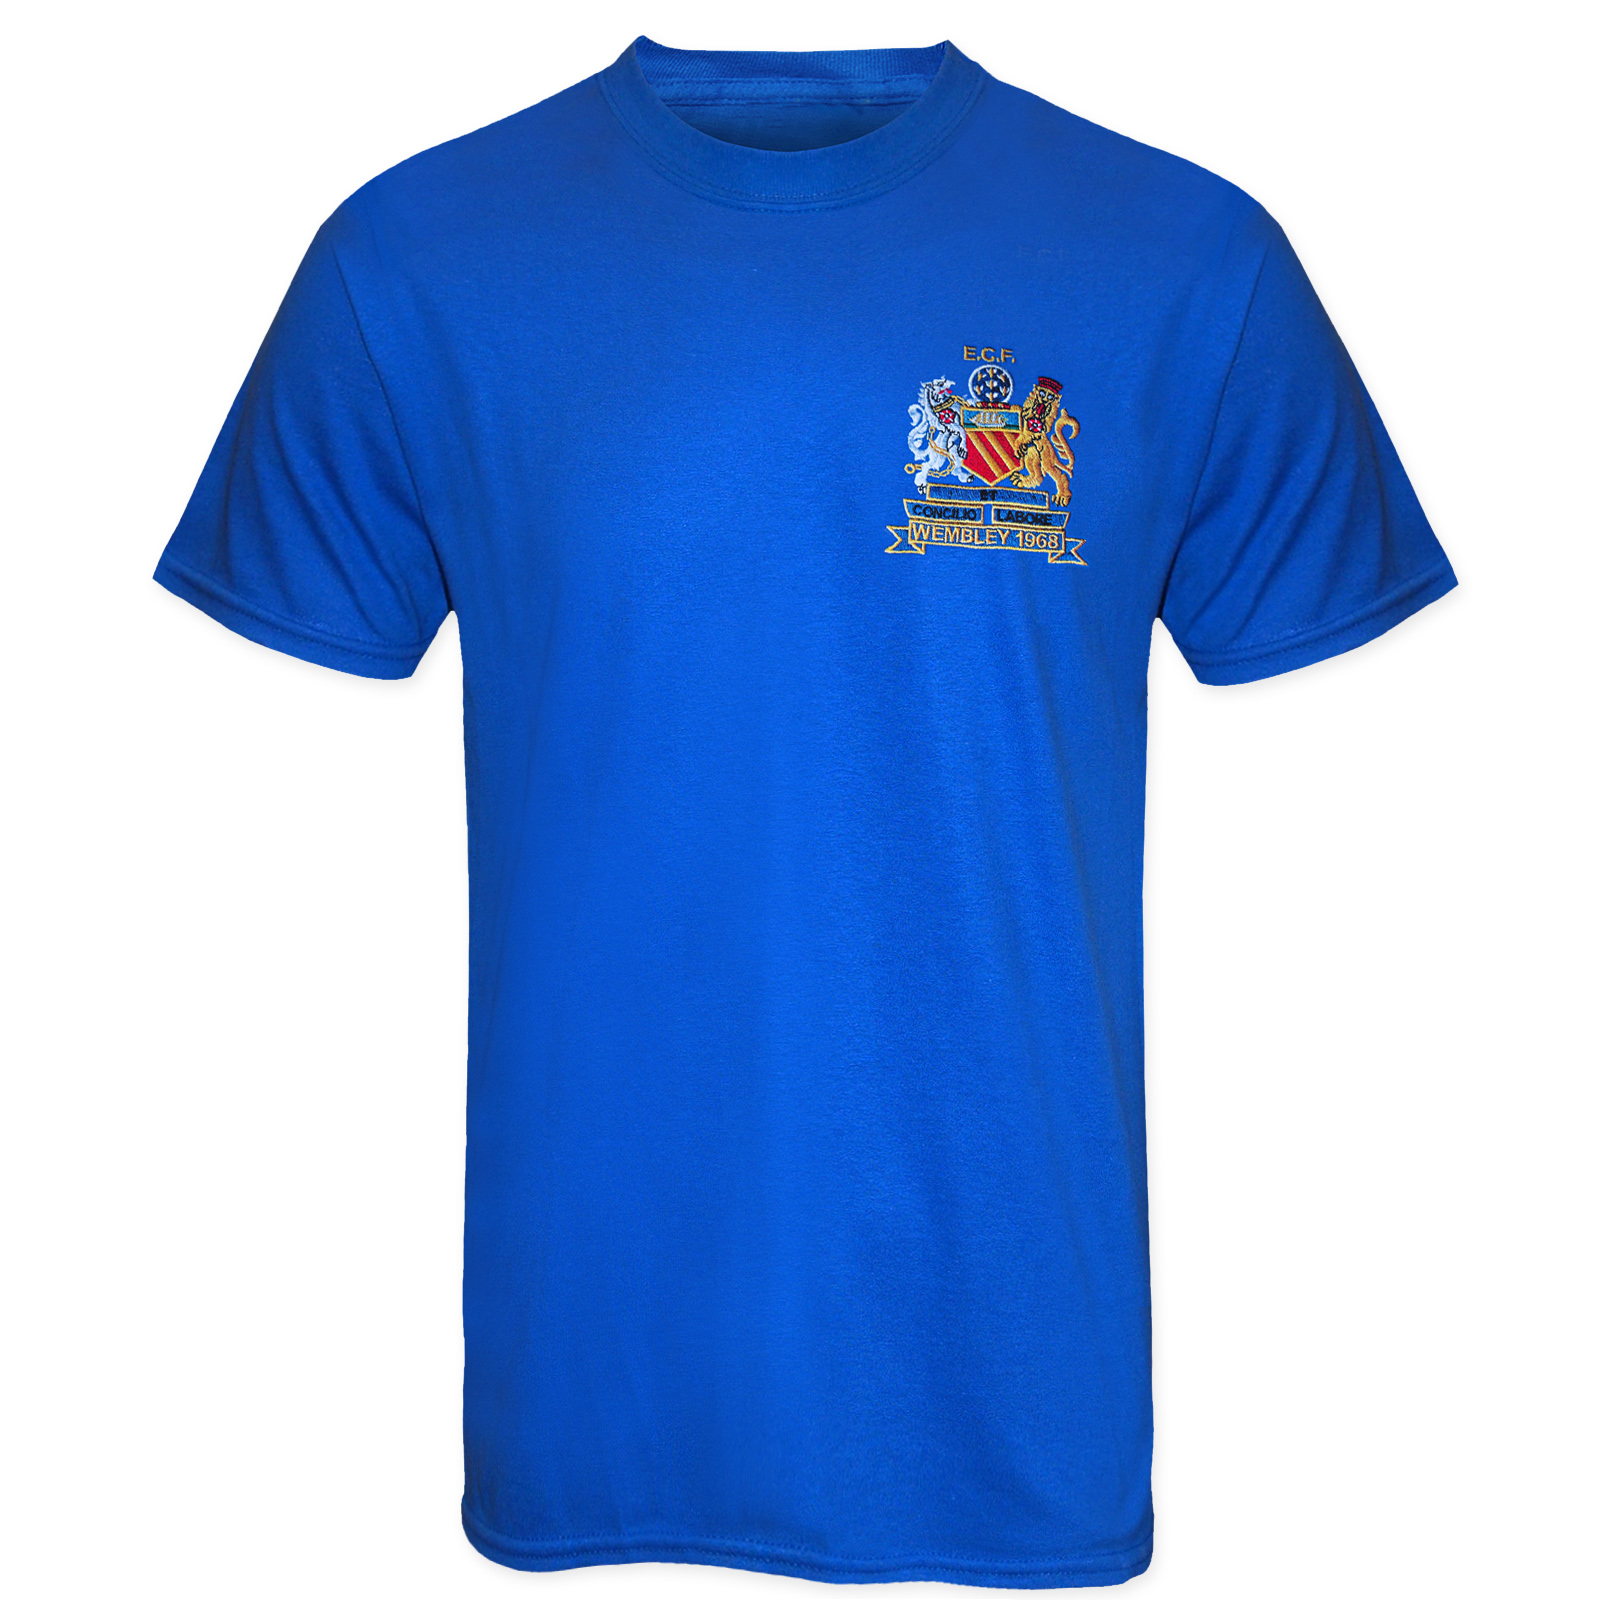 buy online d03a1 d75b0 Details about Football Legends Best & Charlton in Manchester United 1968  Retro Kit T-Shirt